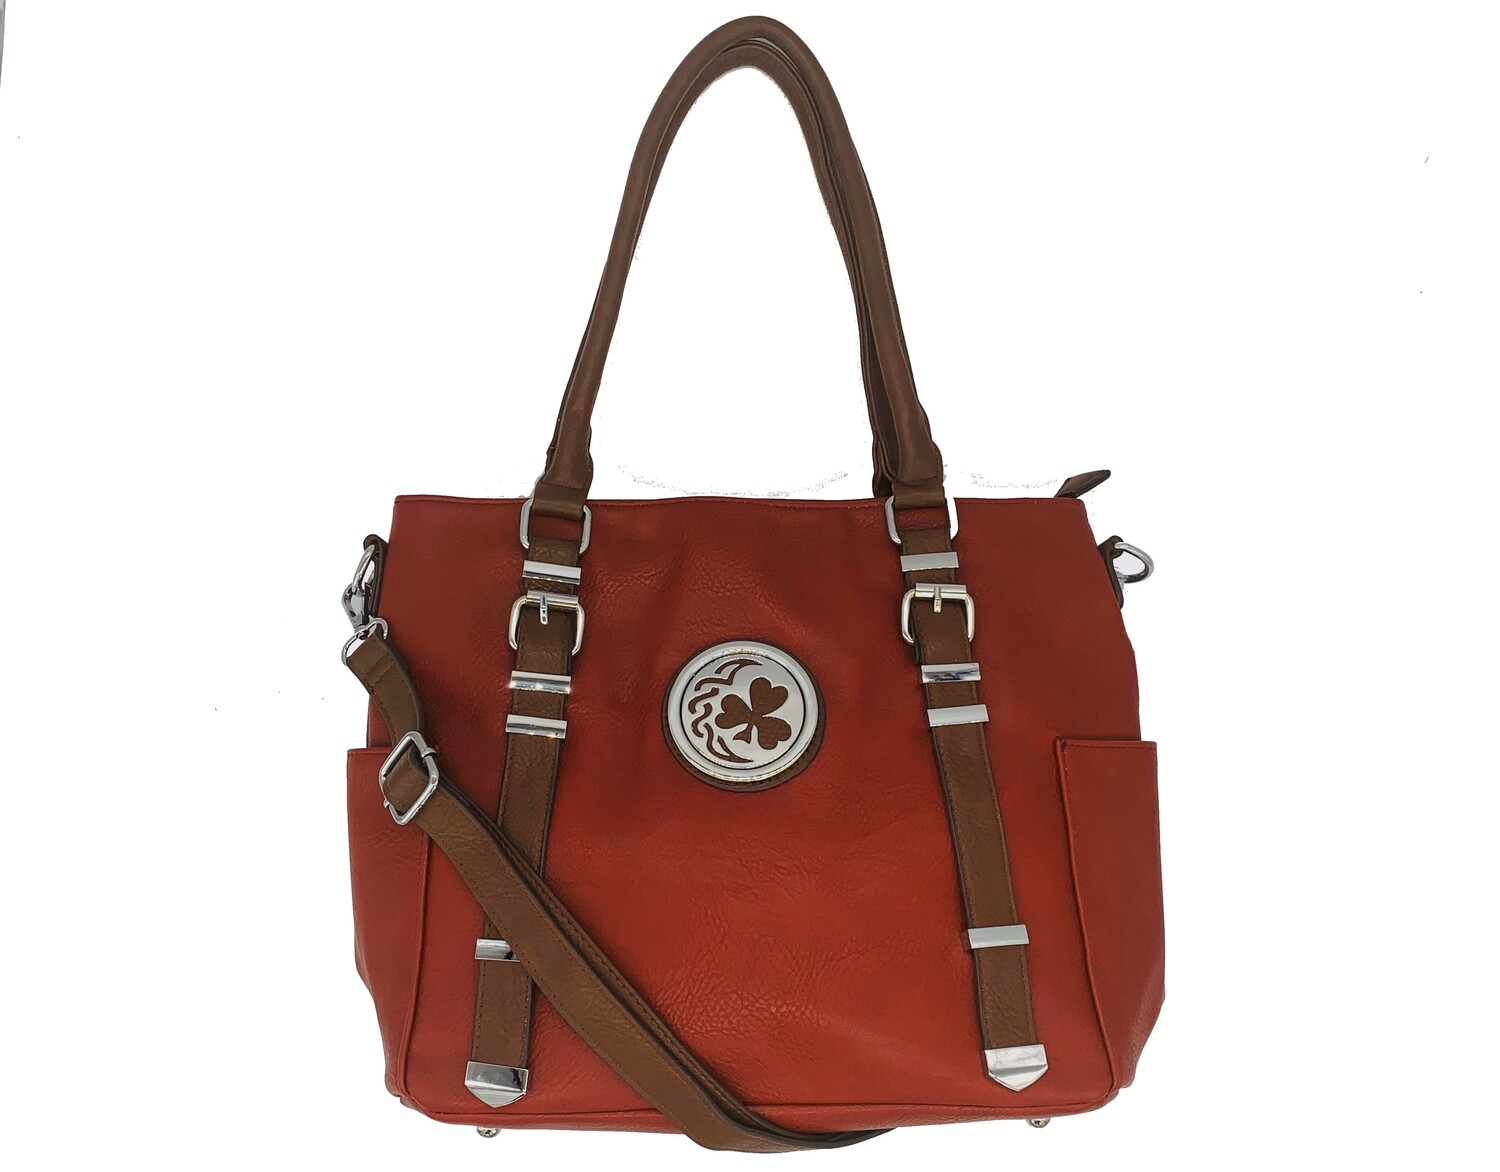 151 Buckle Bag red